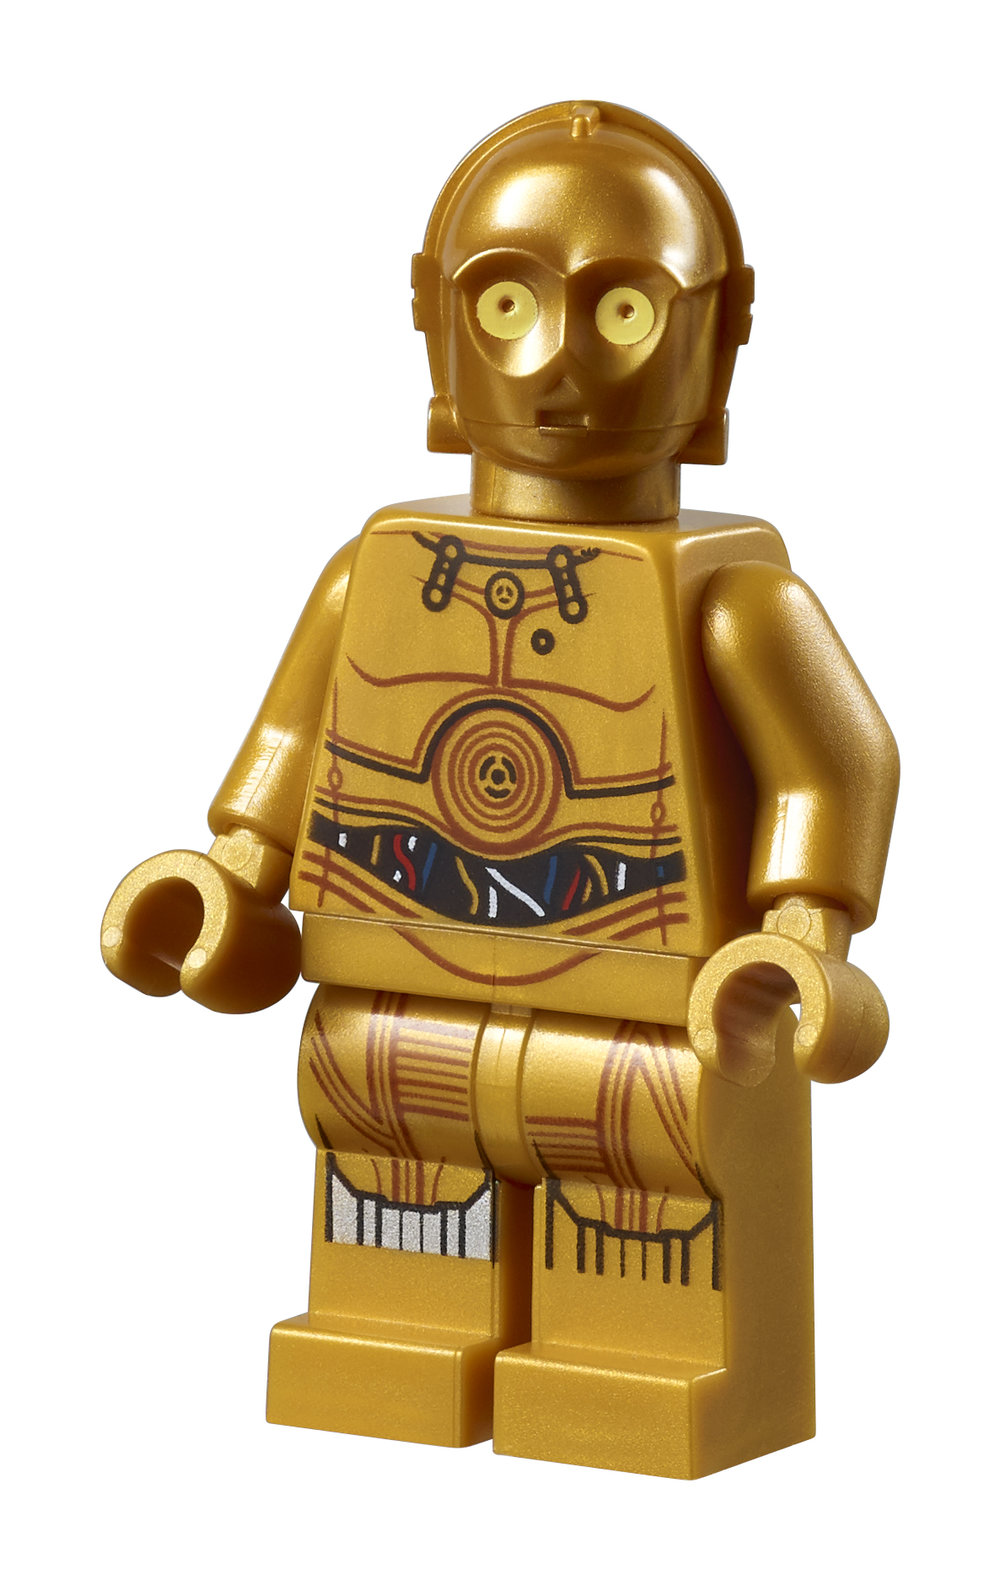 75222_Top_Panel_Minifigure_13.jpg